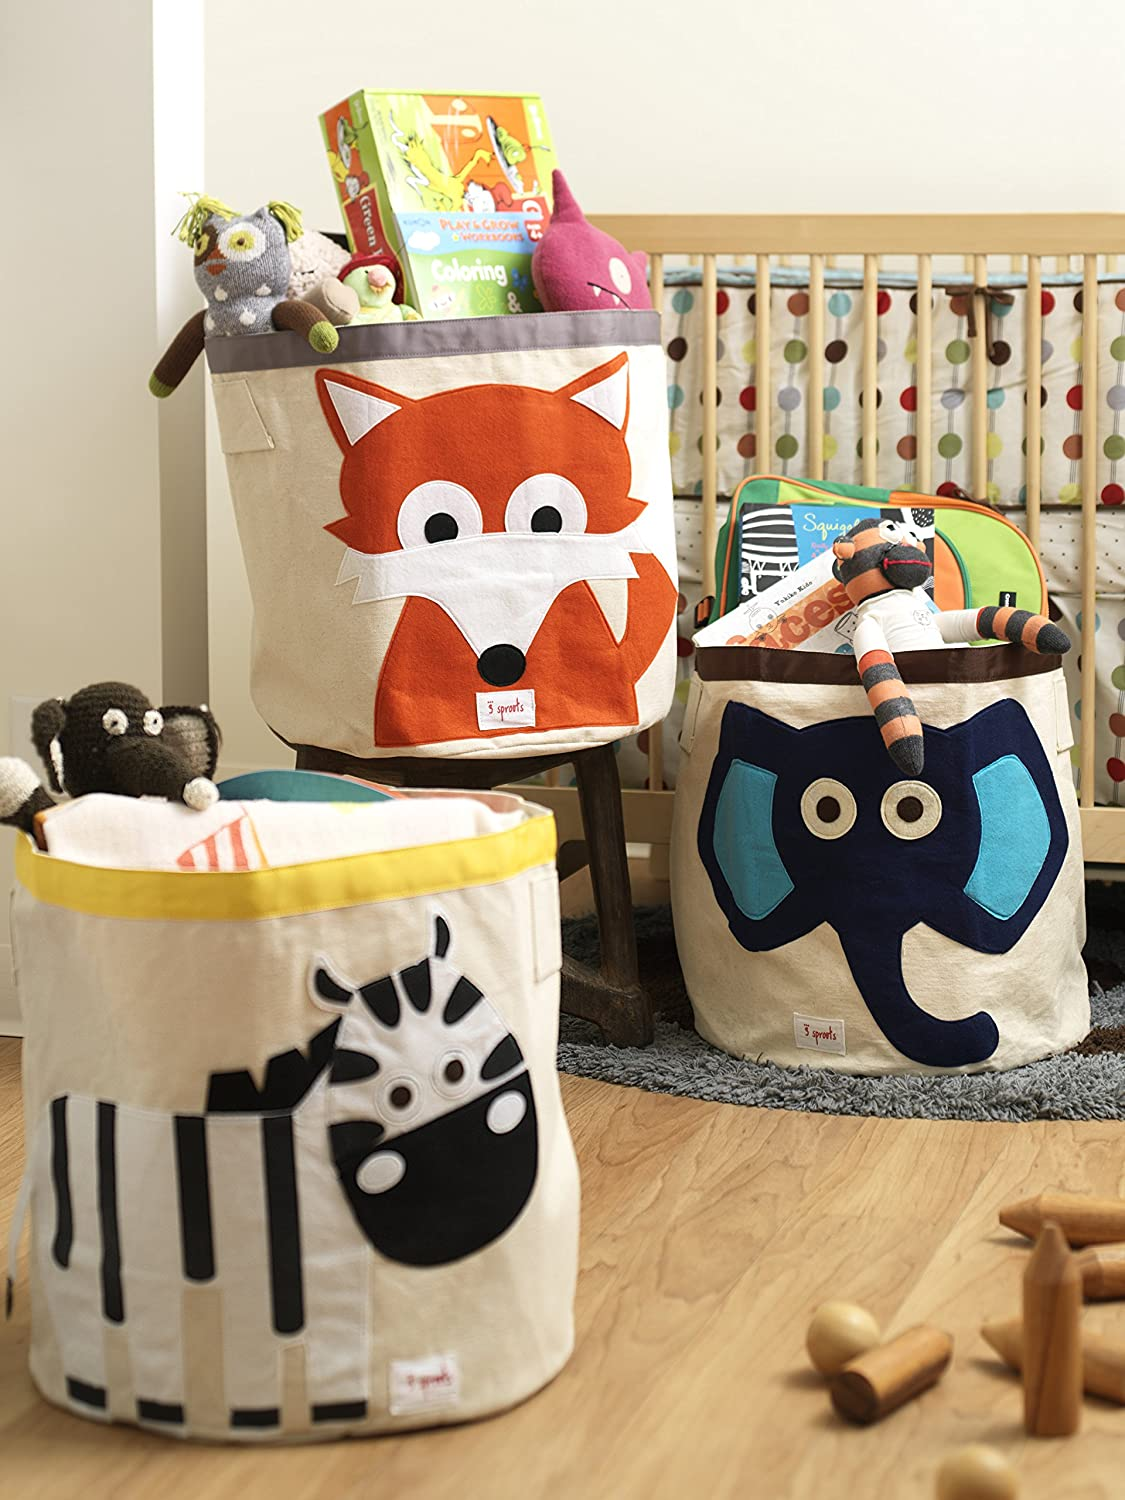 3 Sprouts Canvas Storage Bin Laundry and Toy Basket for Baby and Kids